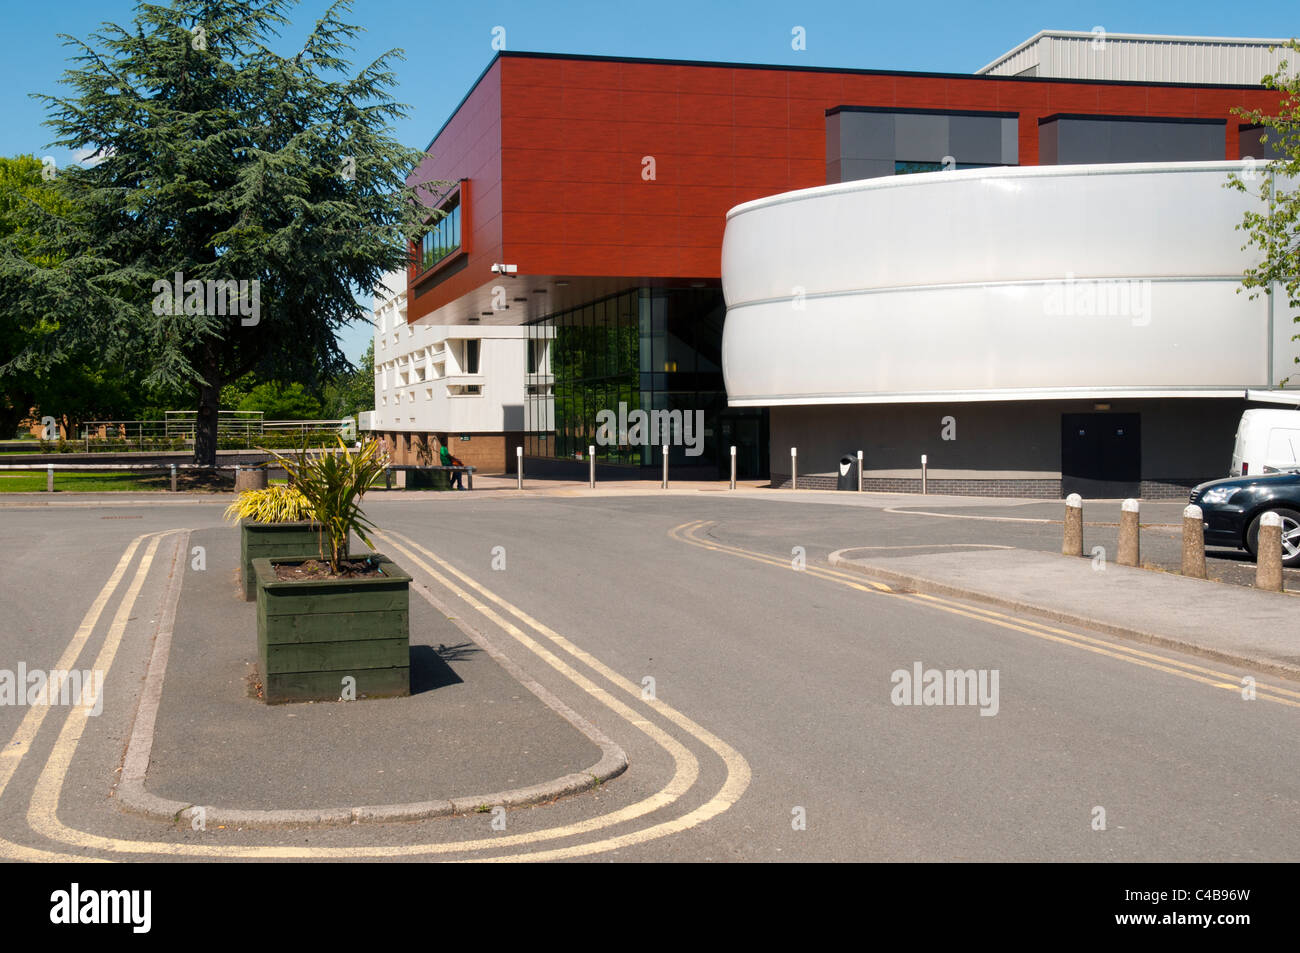 Lady Hale Building, Salford Law School, Salford University, Salford, Manchester, England, UK.  Architect: Broadway - Stock Image